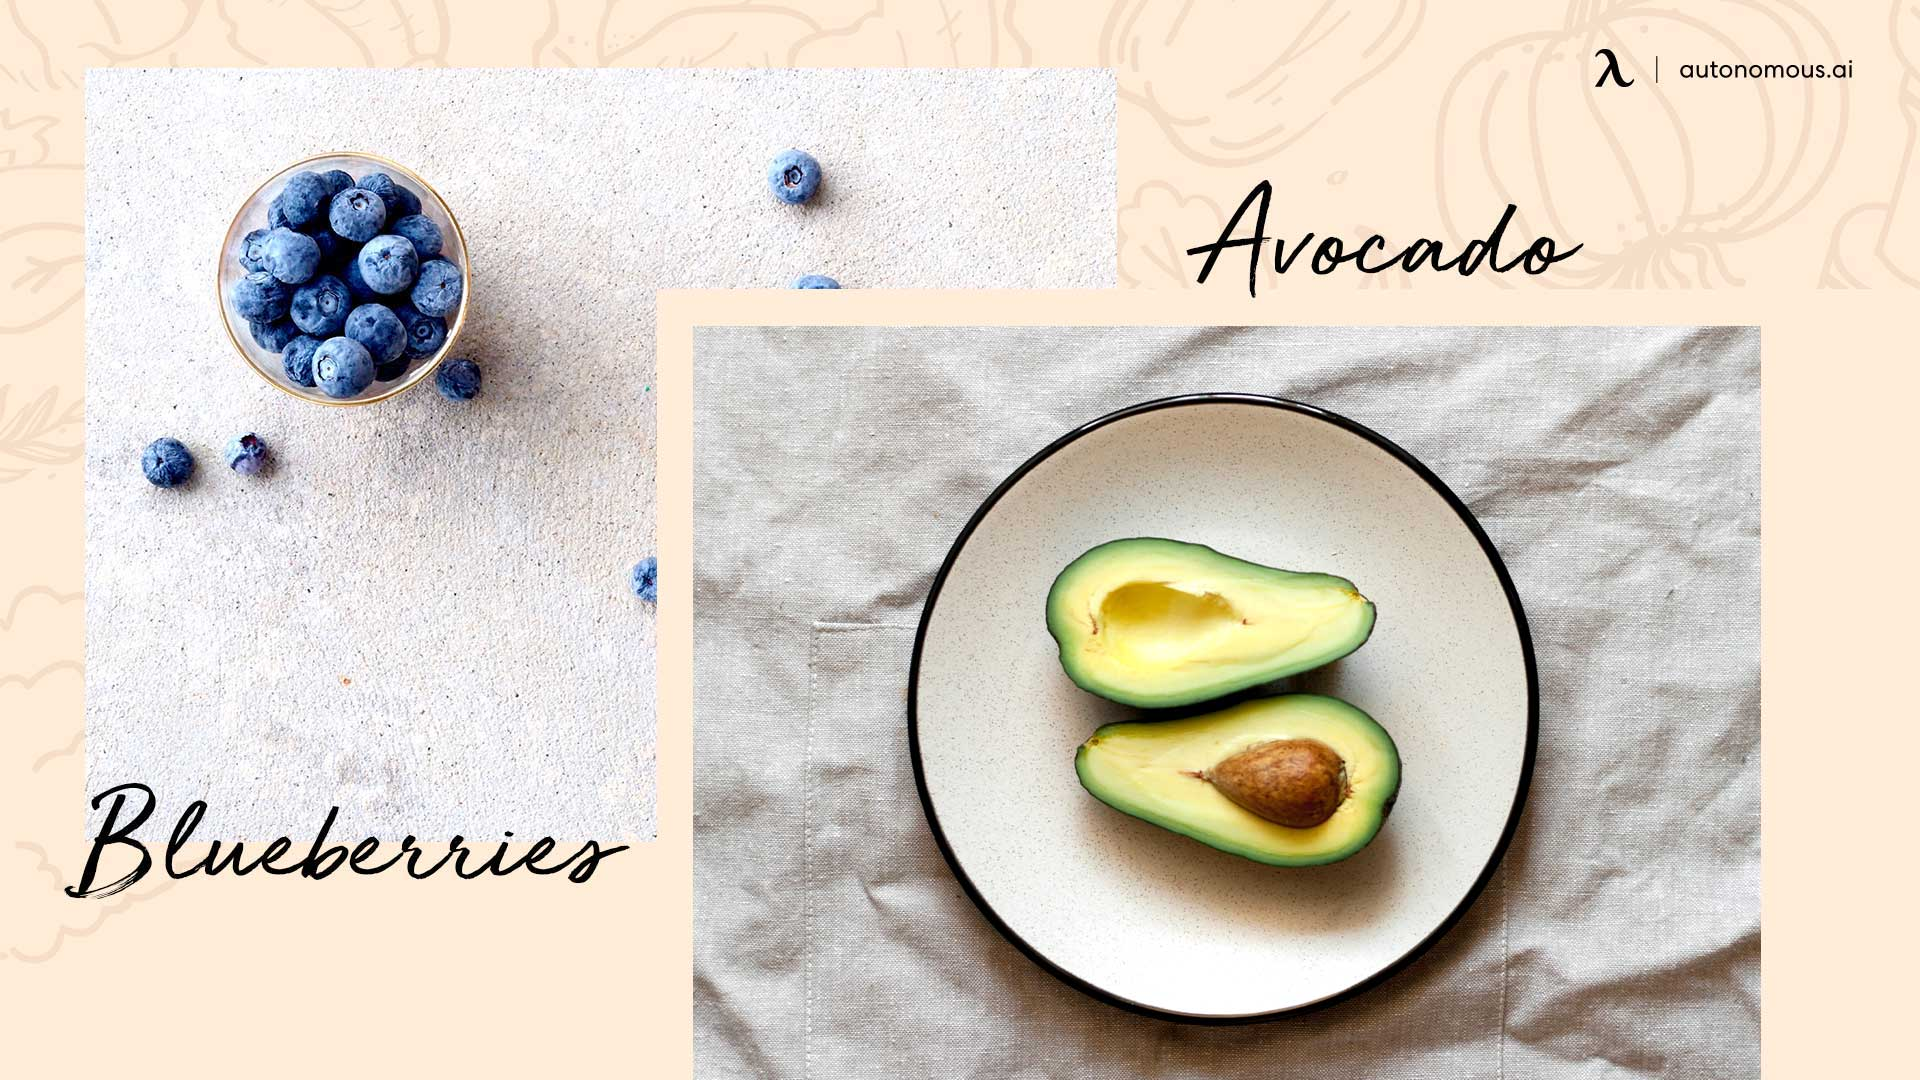 Photo of great snacks for work blueberries and avocado